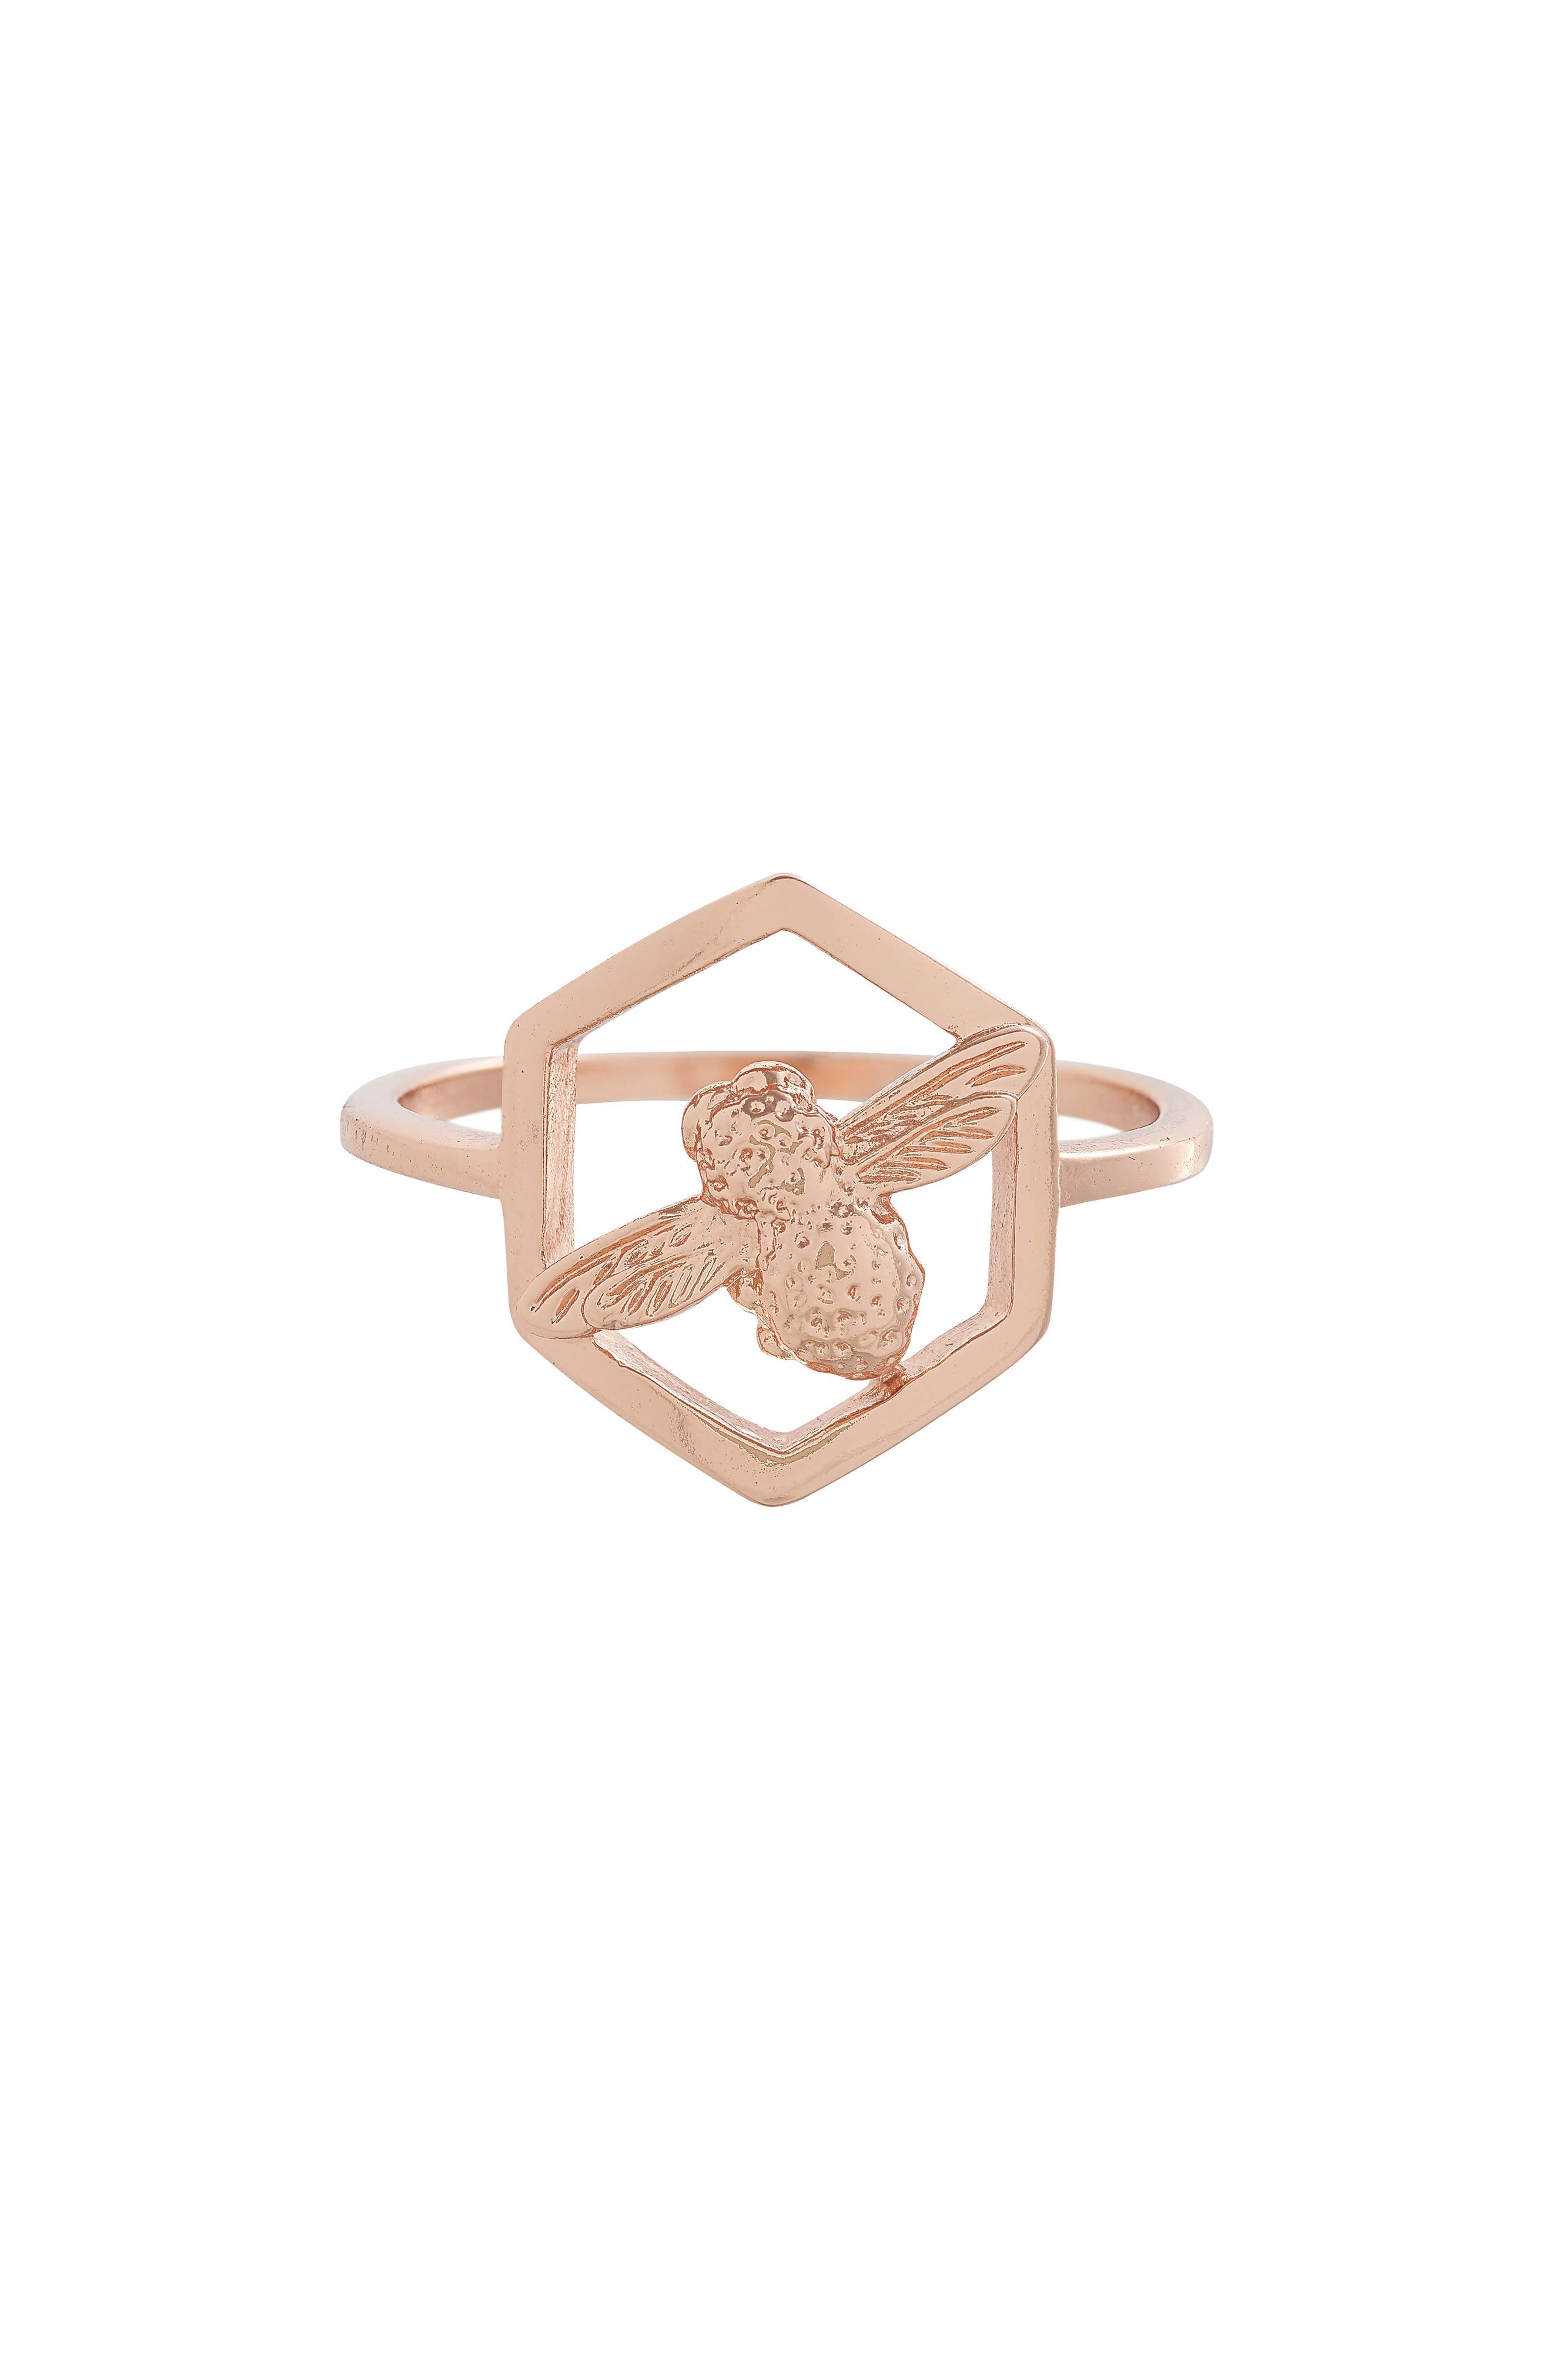 Honeycomb Bee Ring,                         Main,                         color, ROSE GOLD